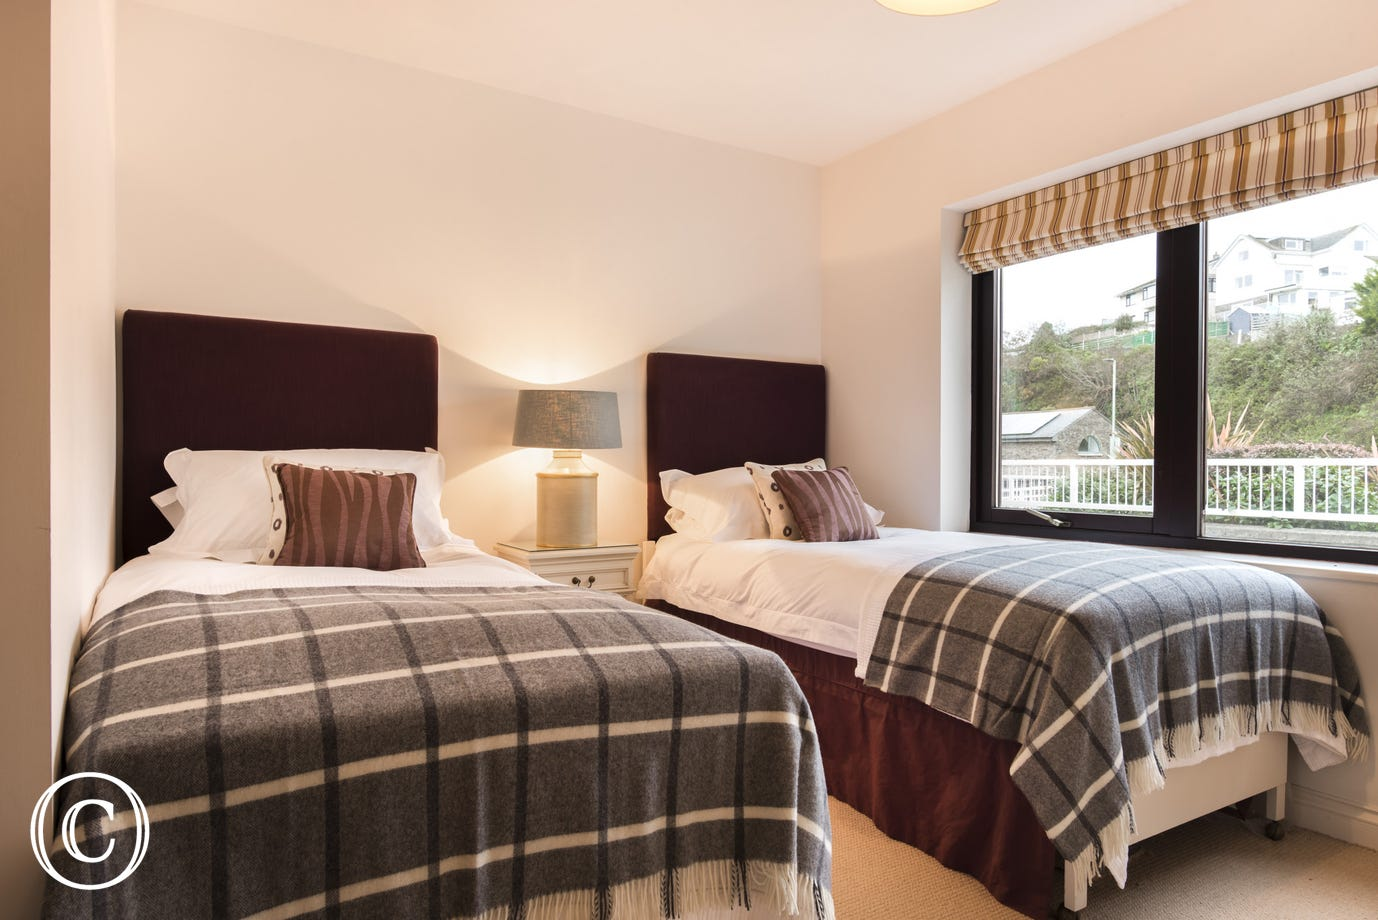 stylish bright twin bedroom with large picture windows in 22 The Moorings Apartment in Kingsbridge